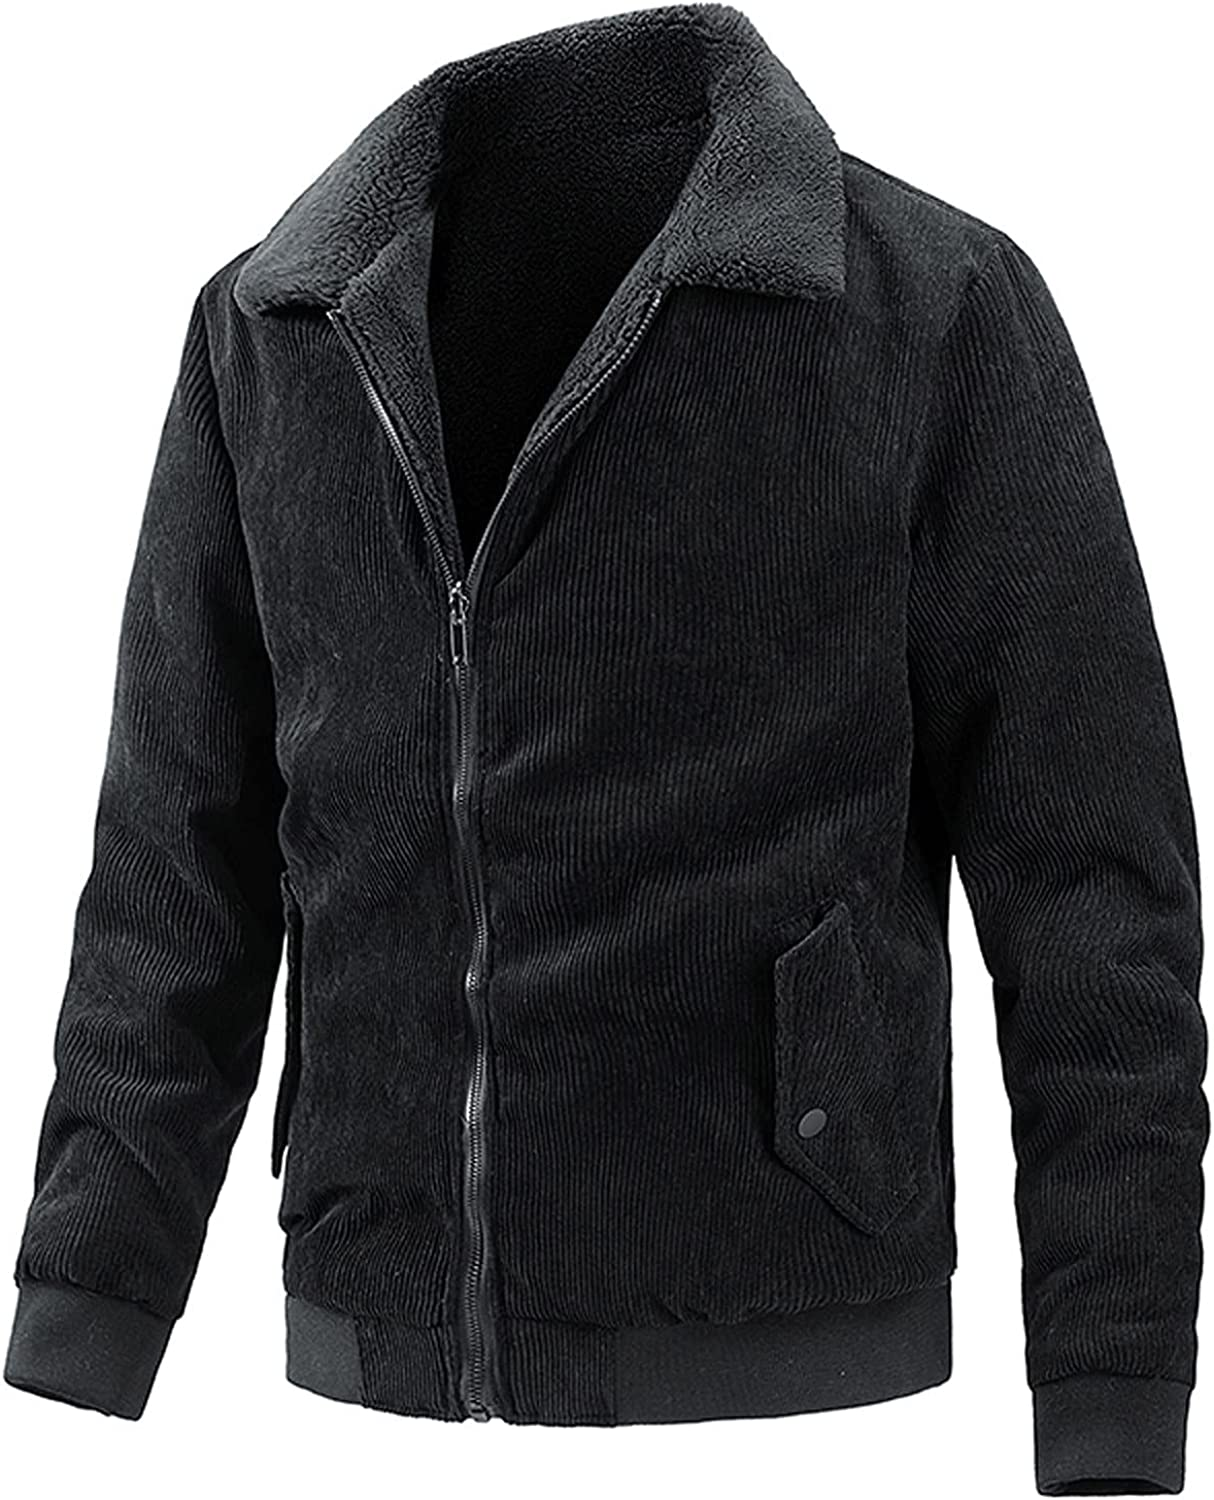 Men Corduroy Cheap mail order shopping Coat Casual AutumnWinter Warm Outlet SALE Both Wear On P Sides